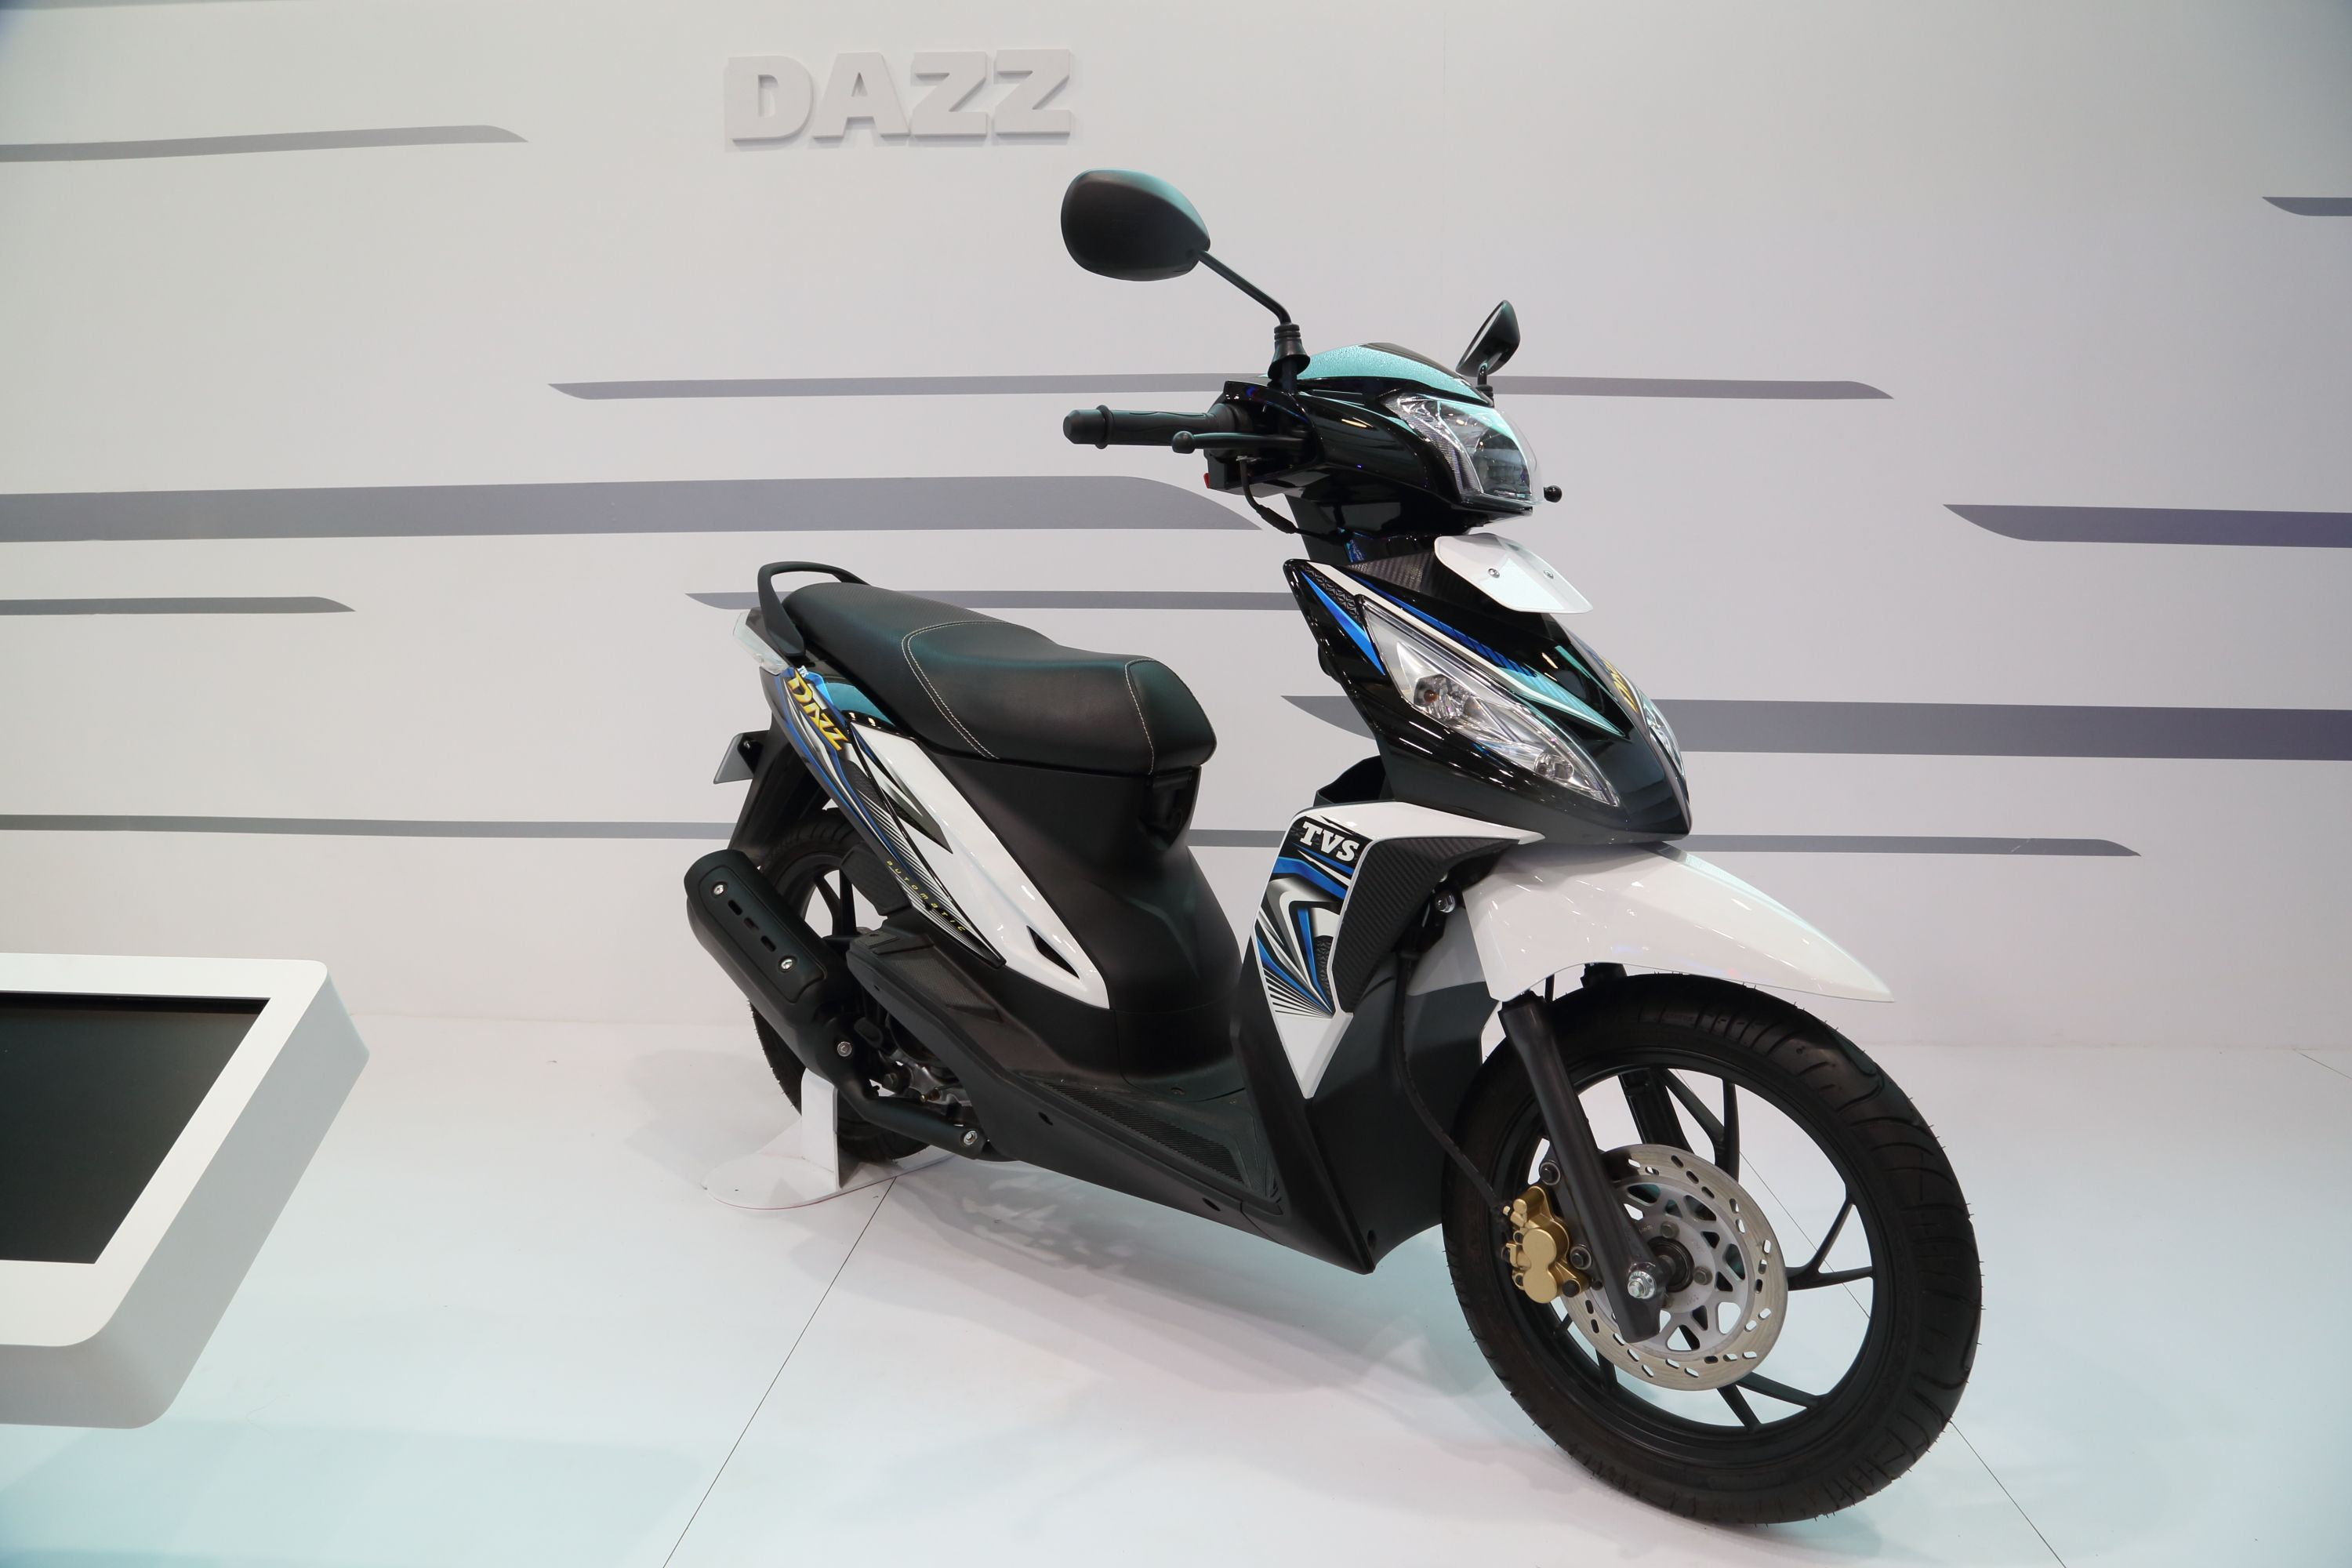 Tvs dazz is exquisitely designed for a convenient and safe ride